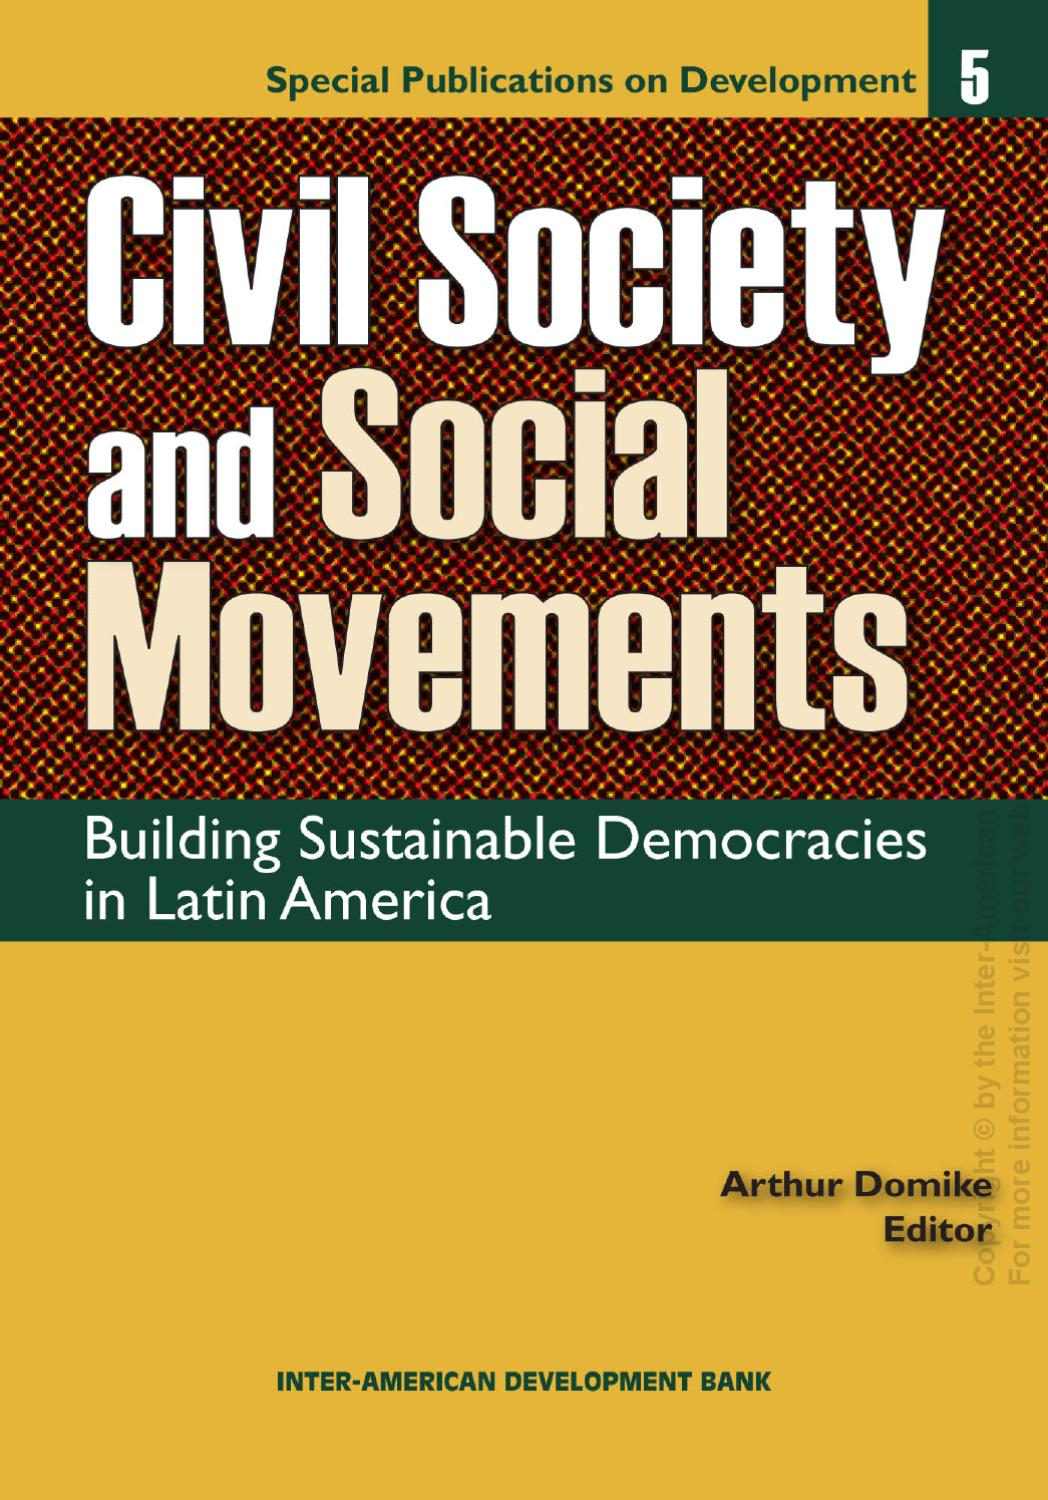 an analysis of the sustainability of democracy in latin america